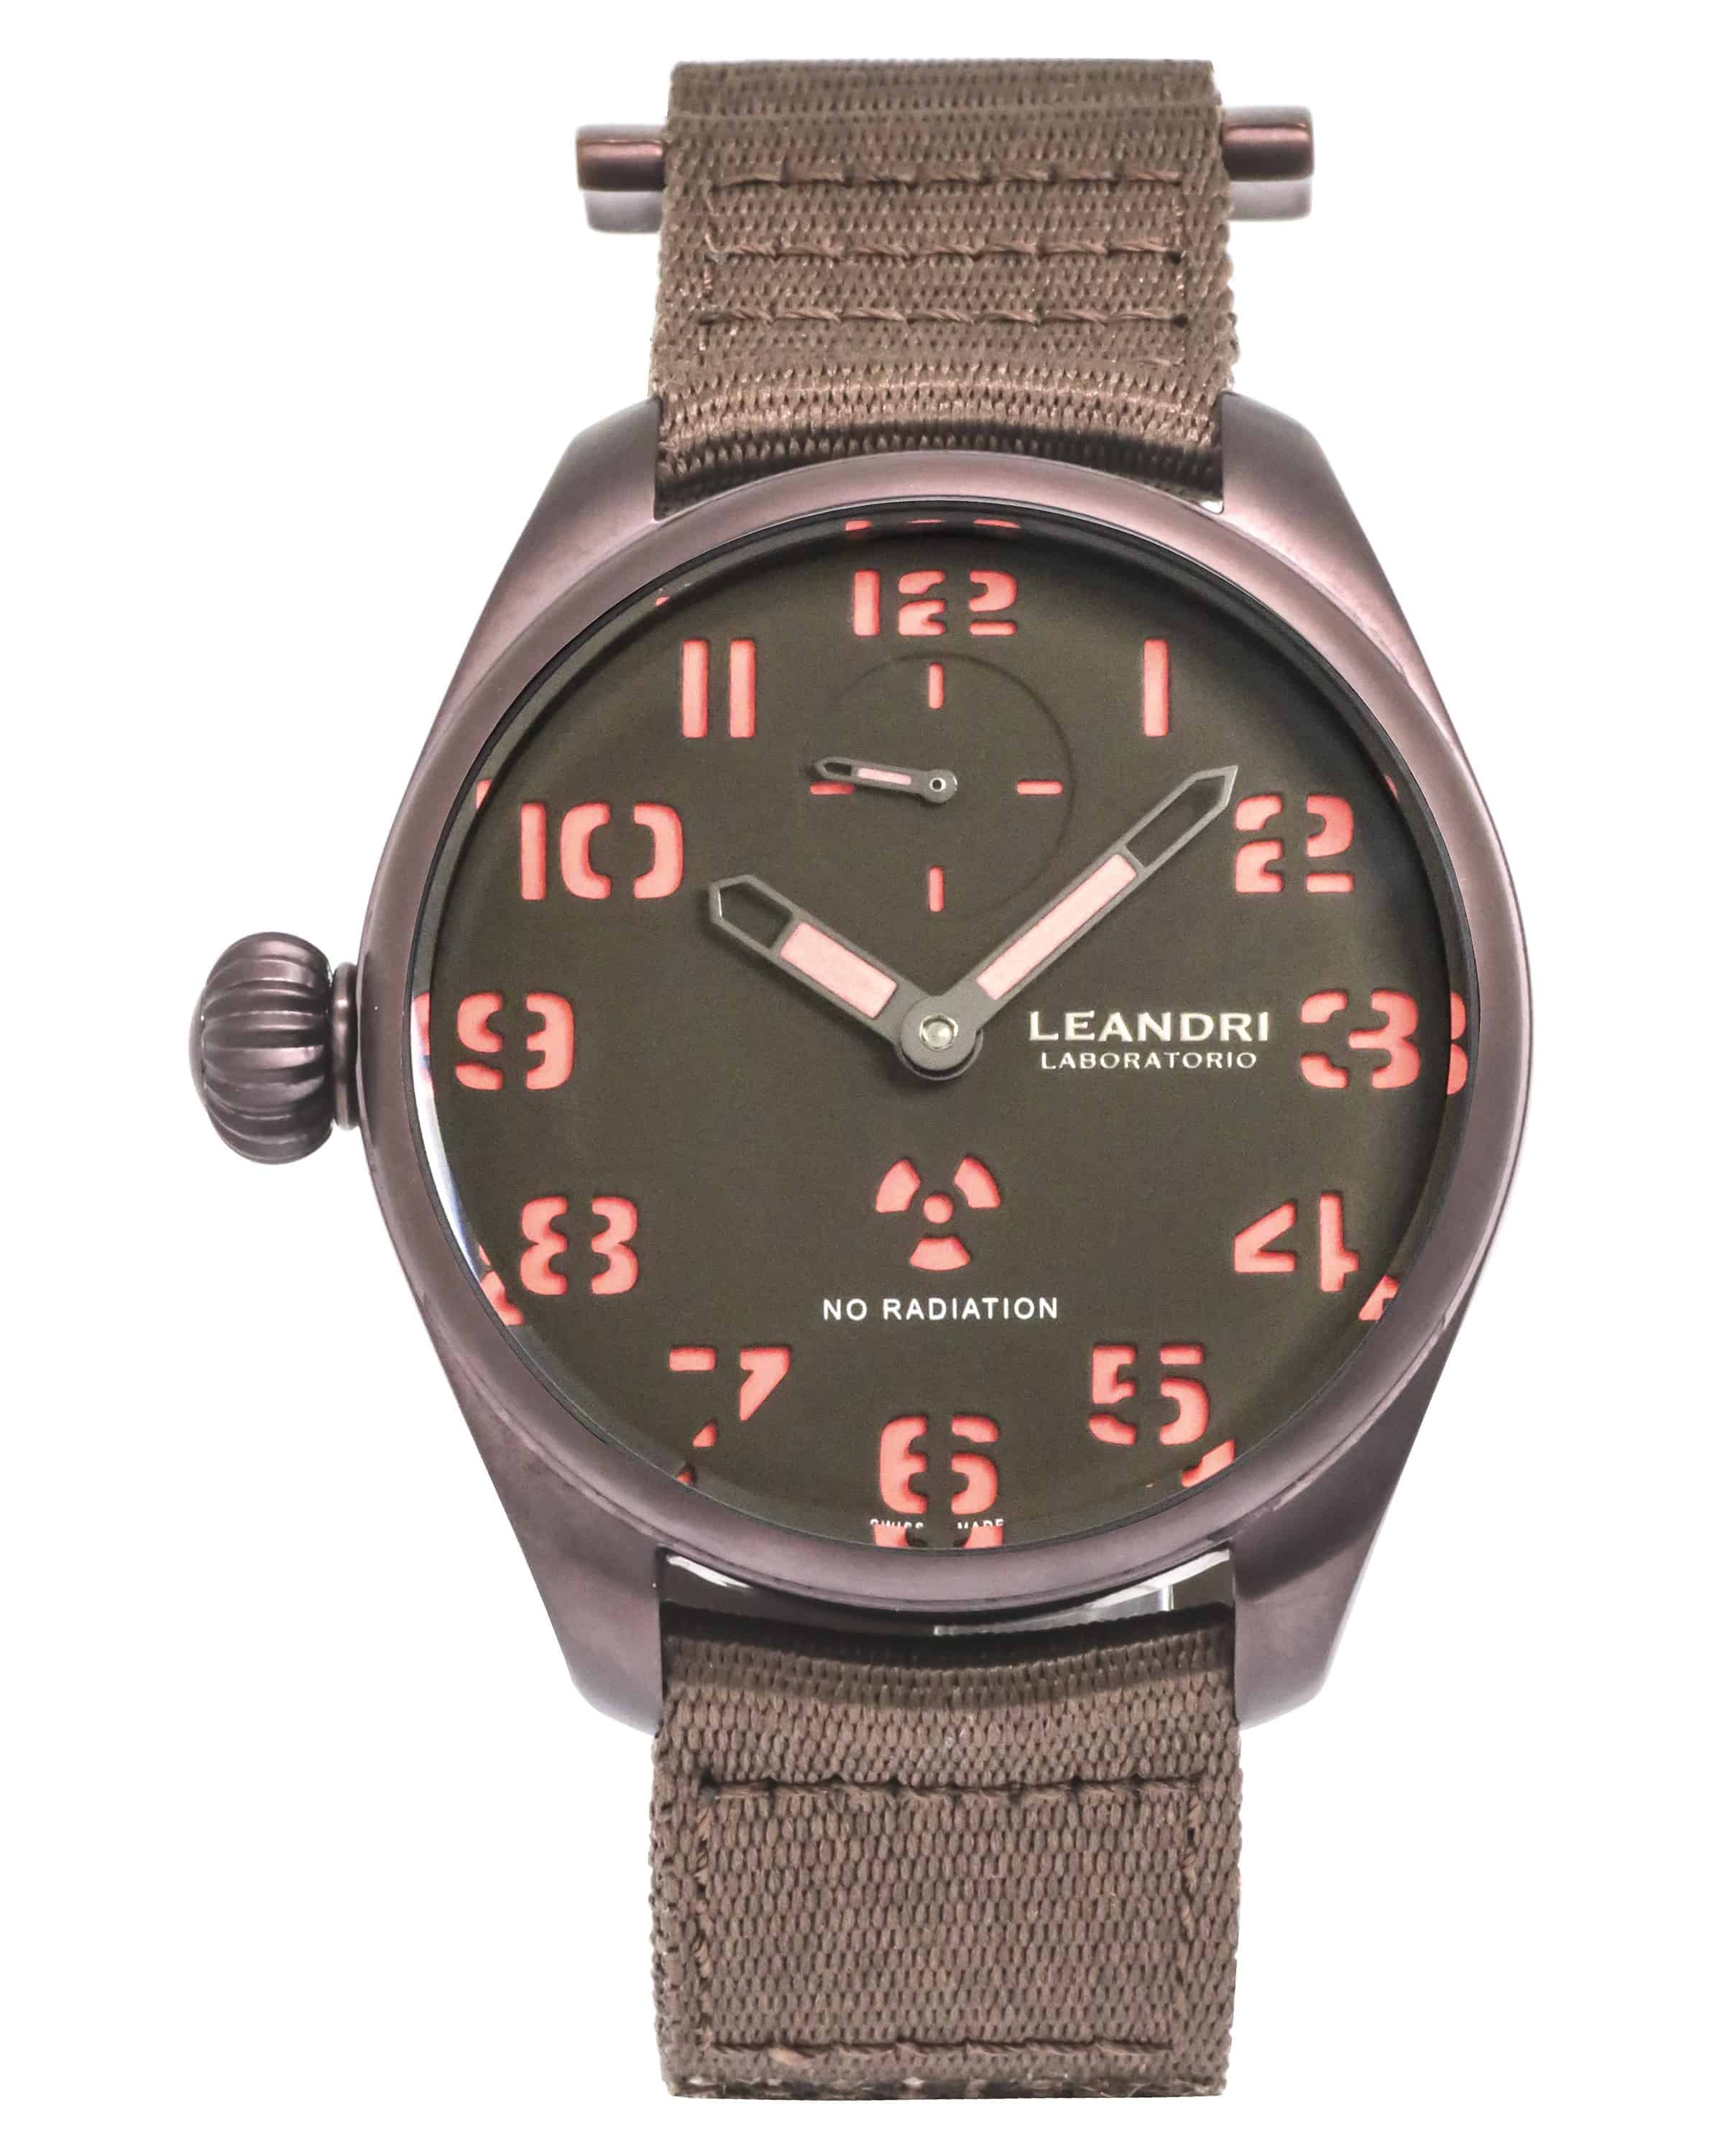 Leandri Laboratorio Manual Wind Watches $349 each + free s/h